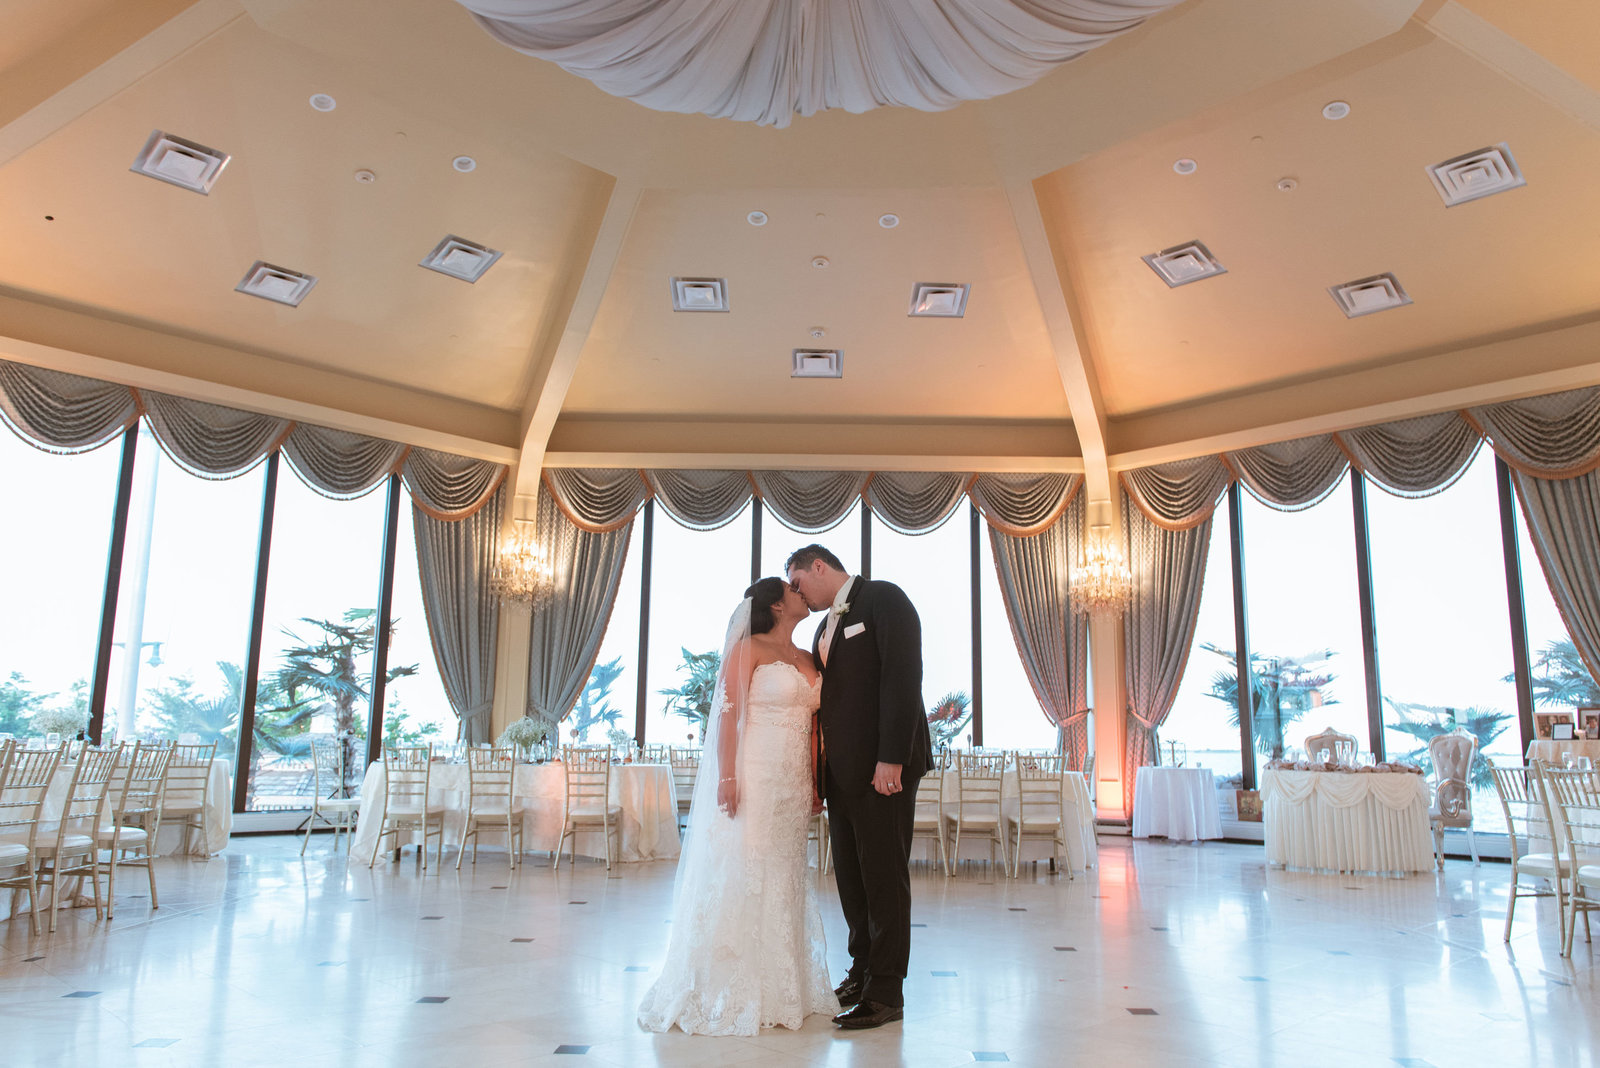 Bride and groom in the ballroom at Chateau La Mer